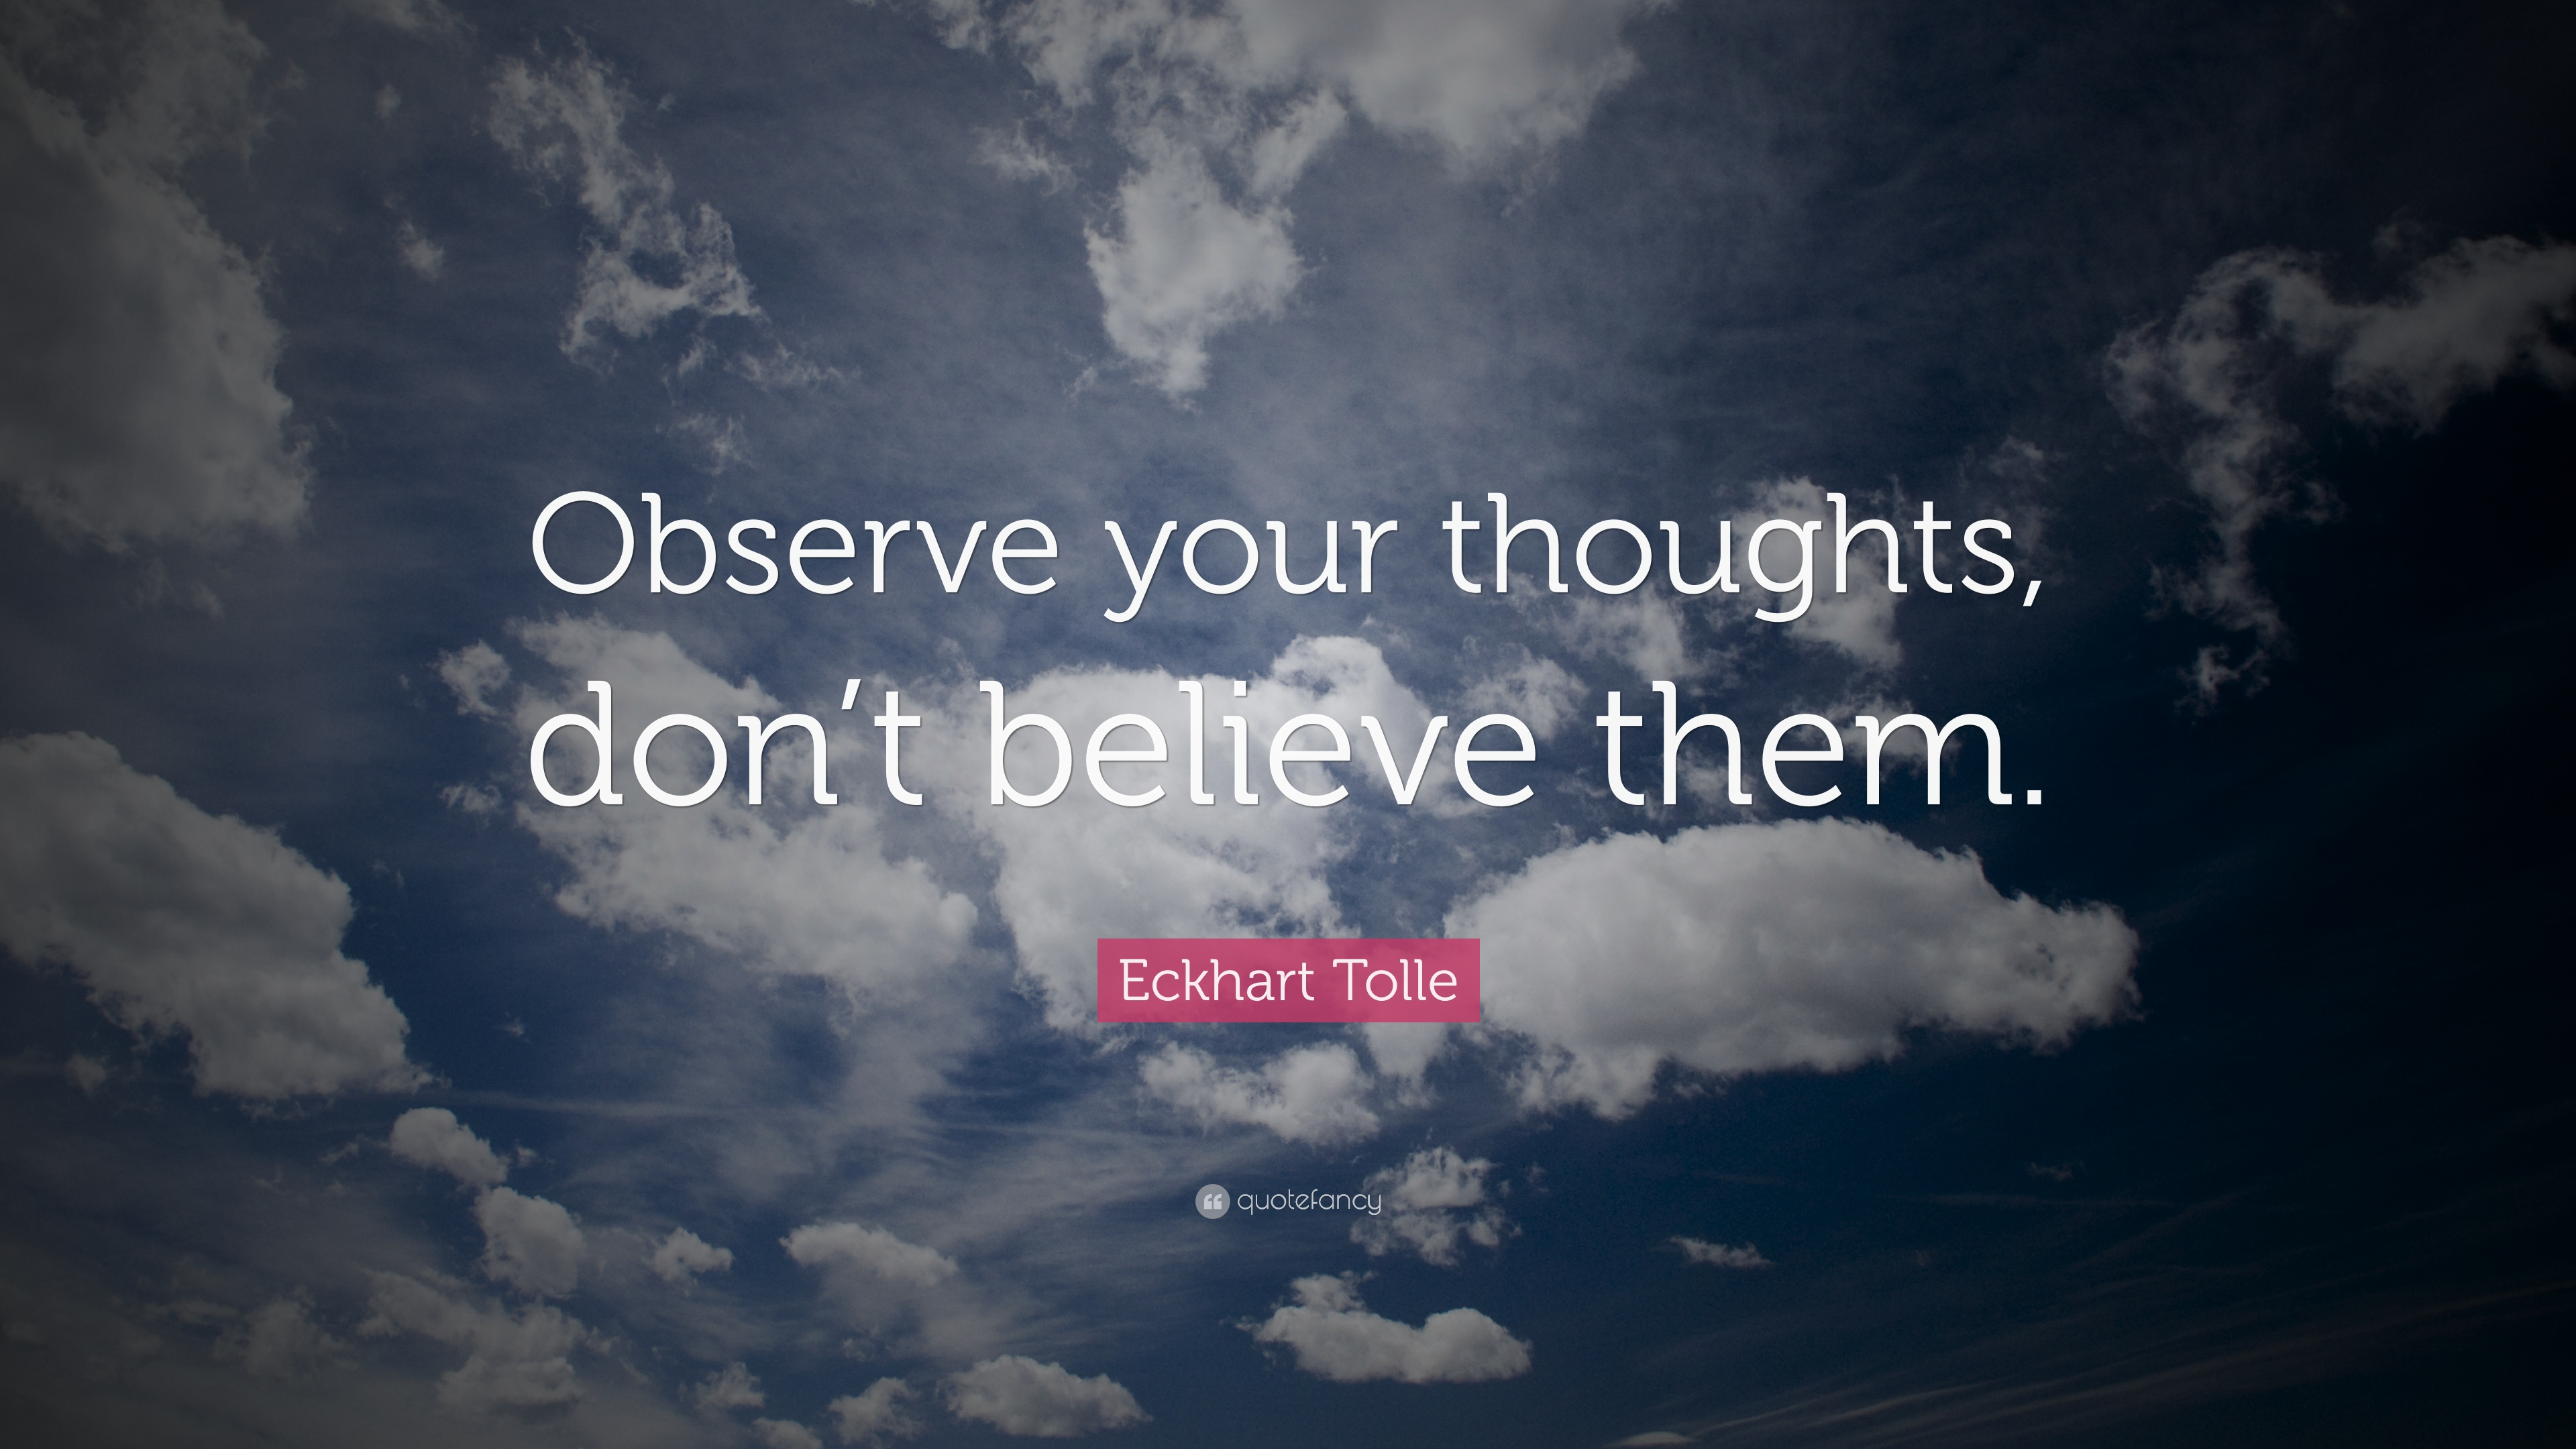 Eckhart Tolle Quotes | Eckhart Tolle Quote Observe Your Thoughts Don T Believe Them